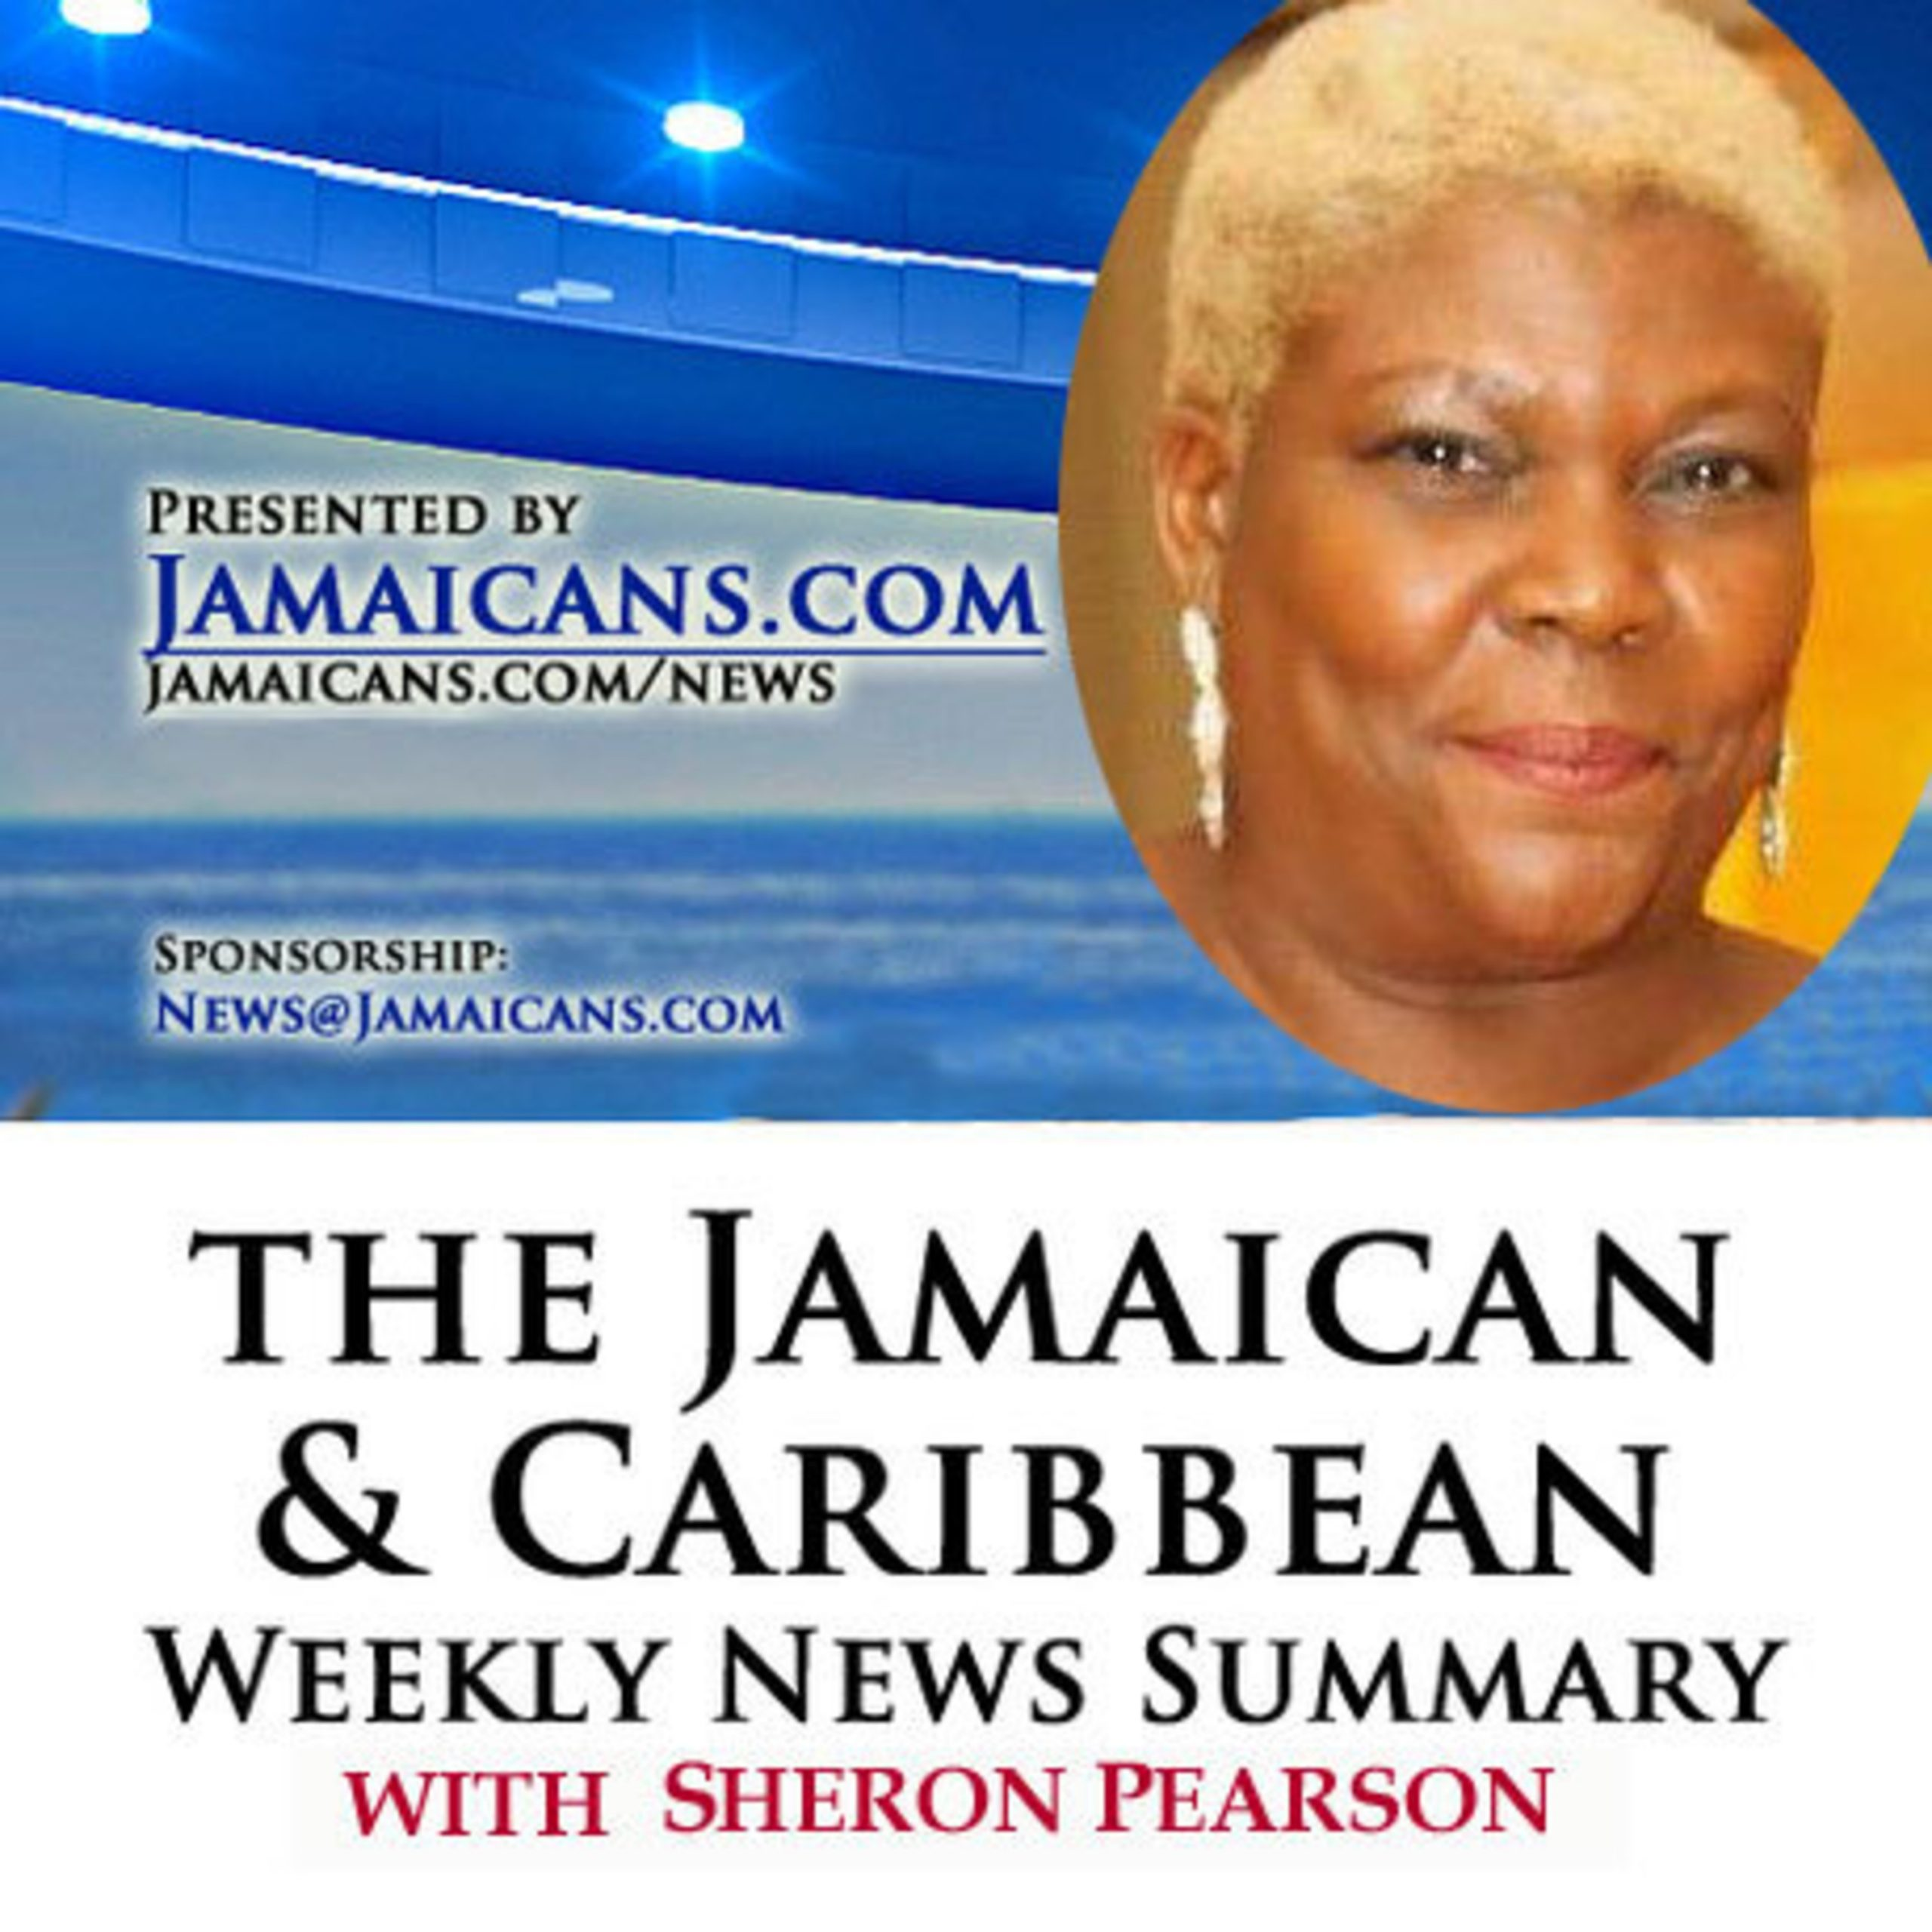 Listen to the Podcast of The Jamaica & Caribbean Weekly News Summary for the week ending November 1, 2019